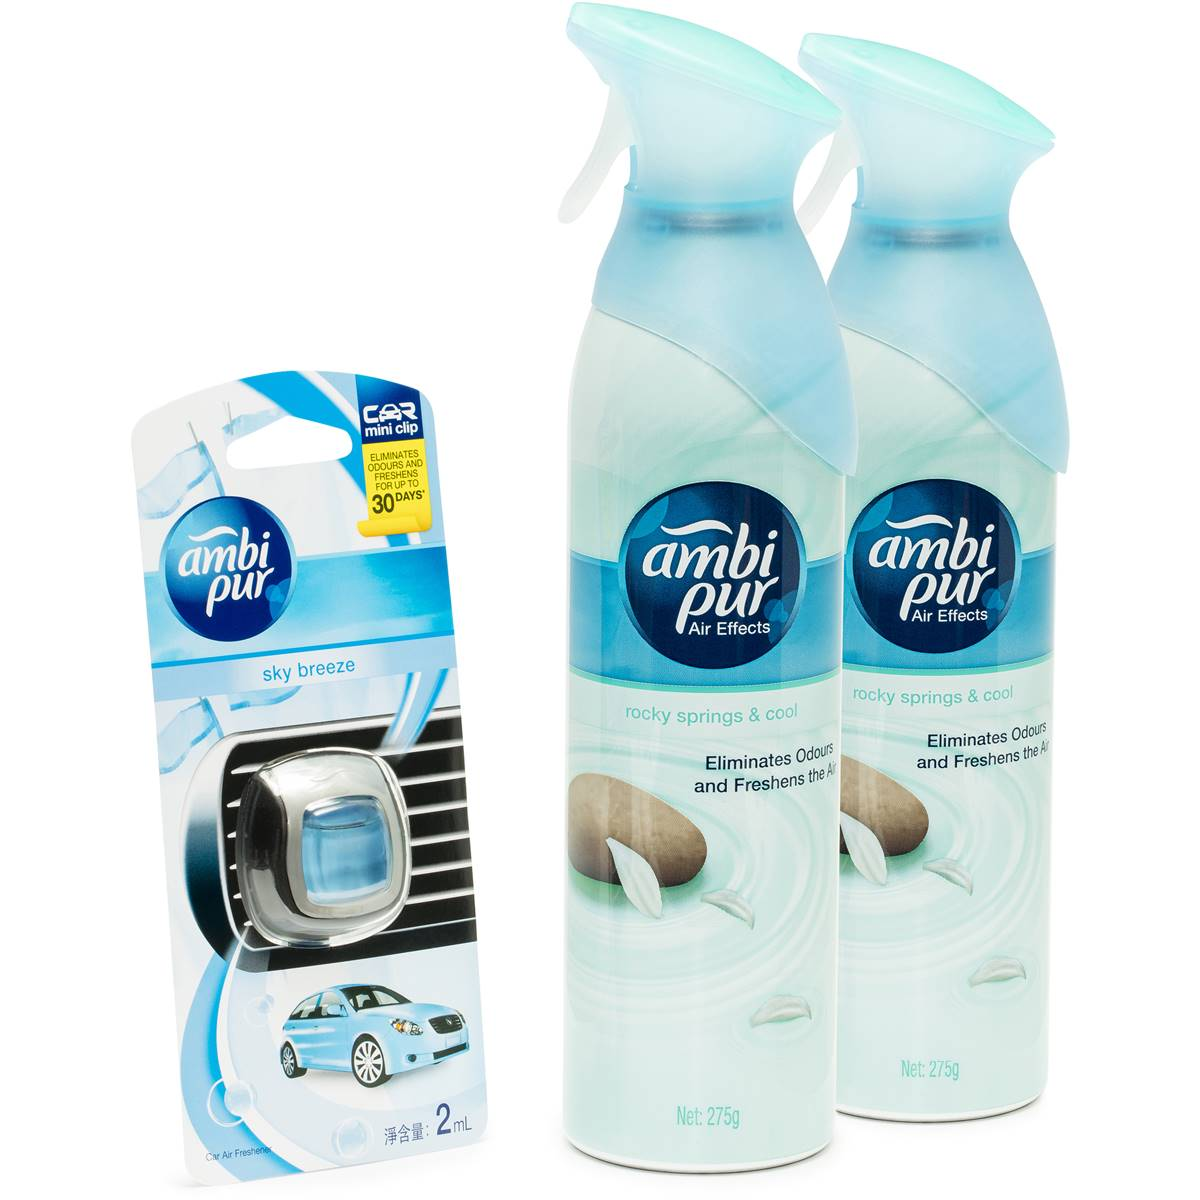 Ambi Pur Ambi Pur Rocky Springs Air Freshener With Car Freshener